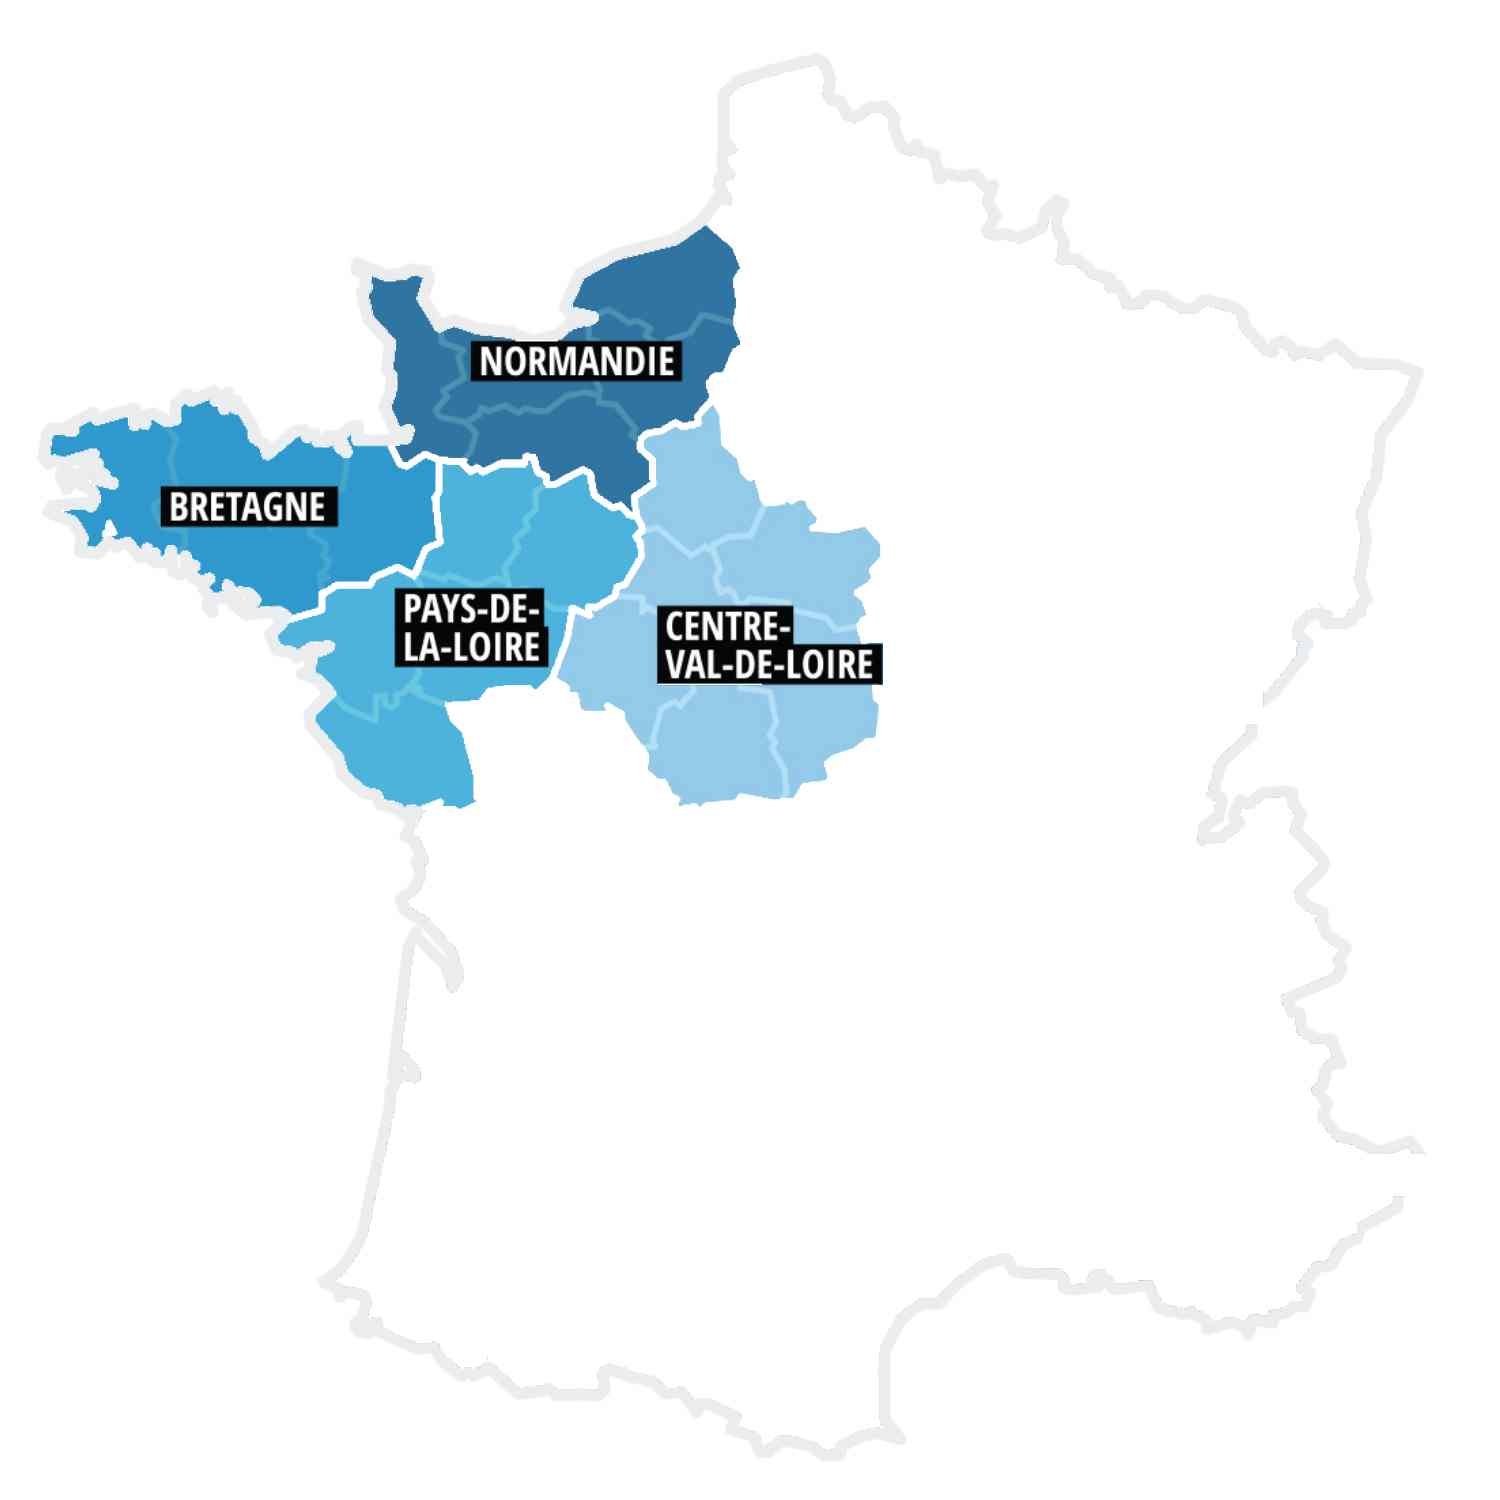 Nord-Ouest